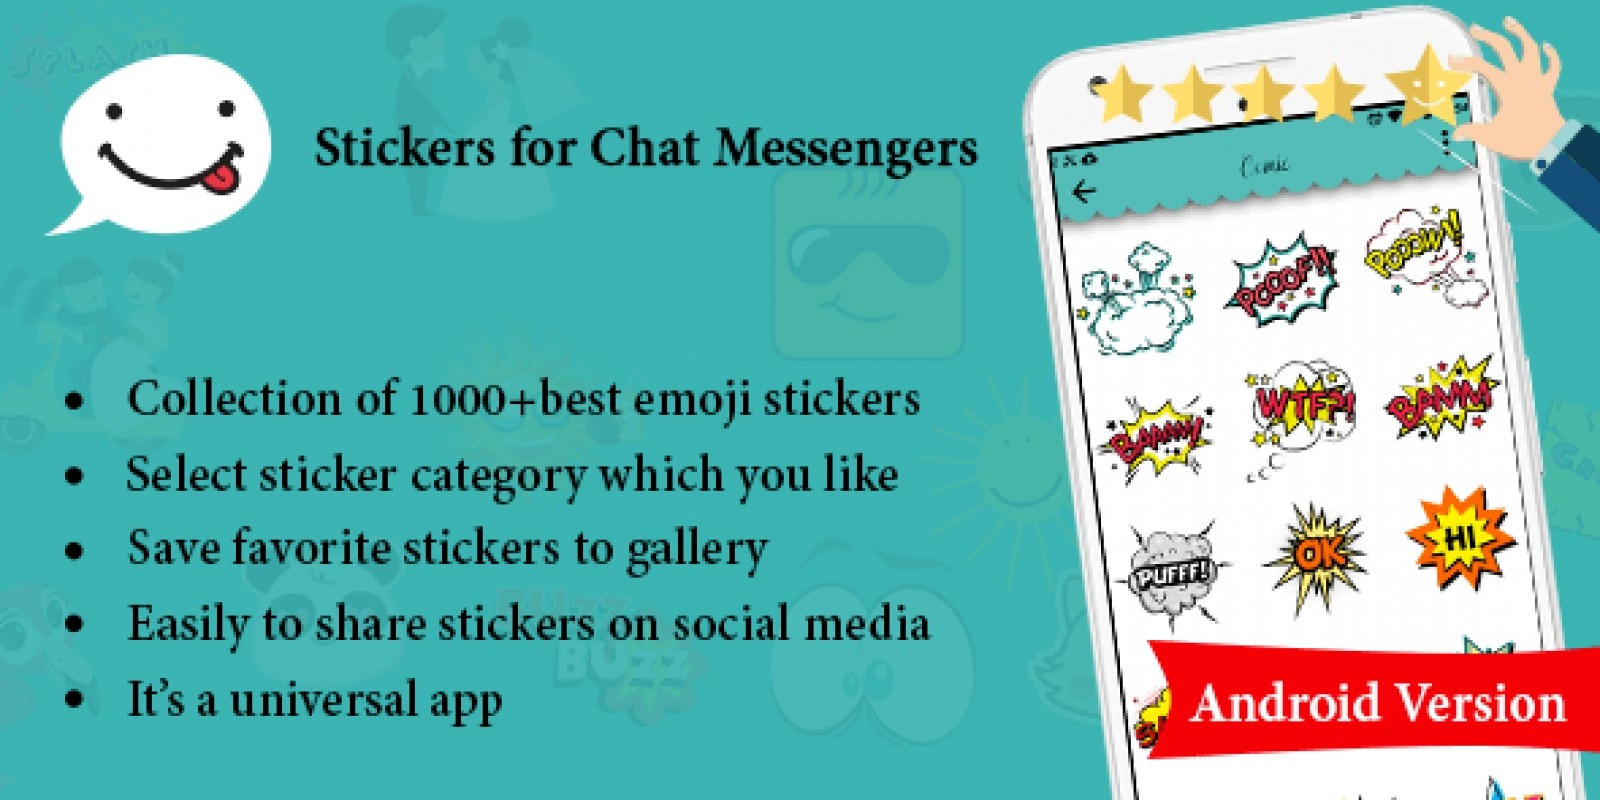 Stickers For Chat Messengers Android App